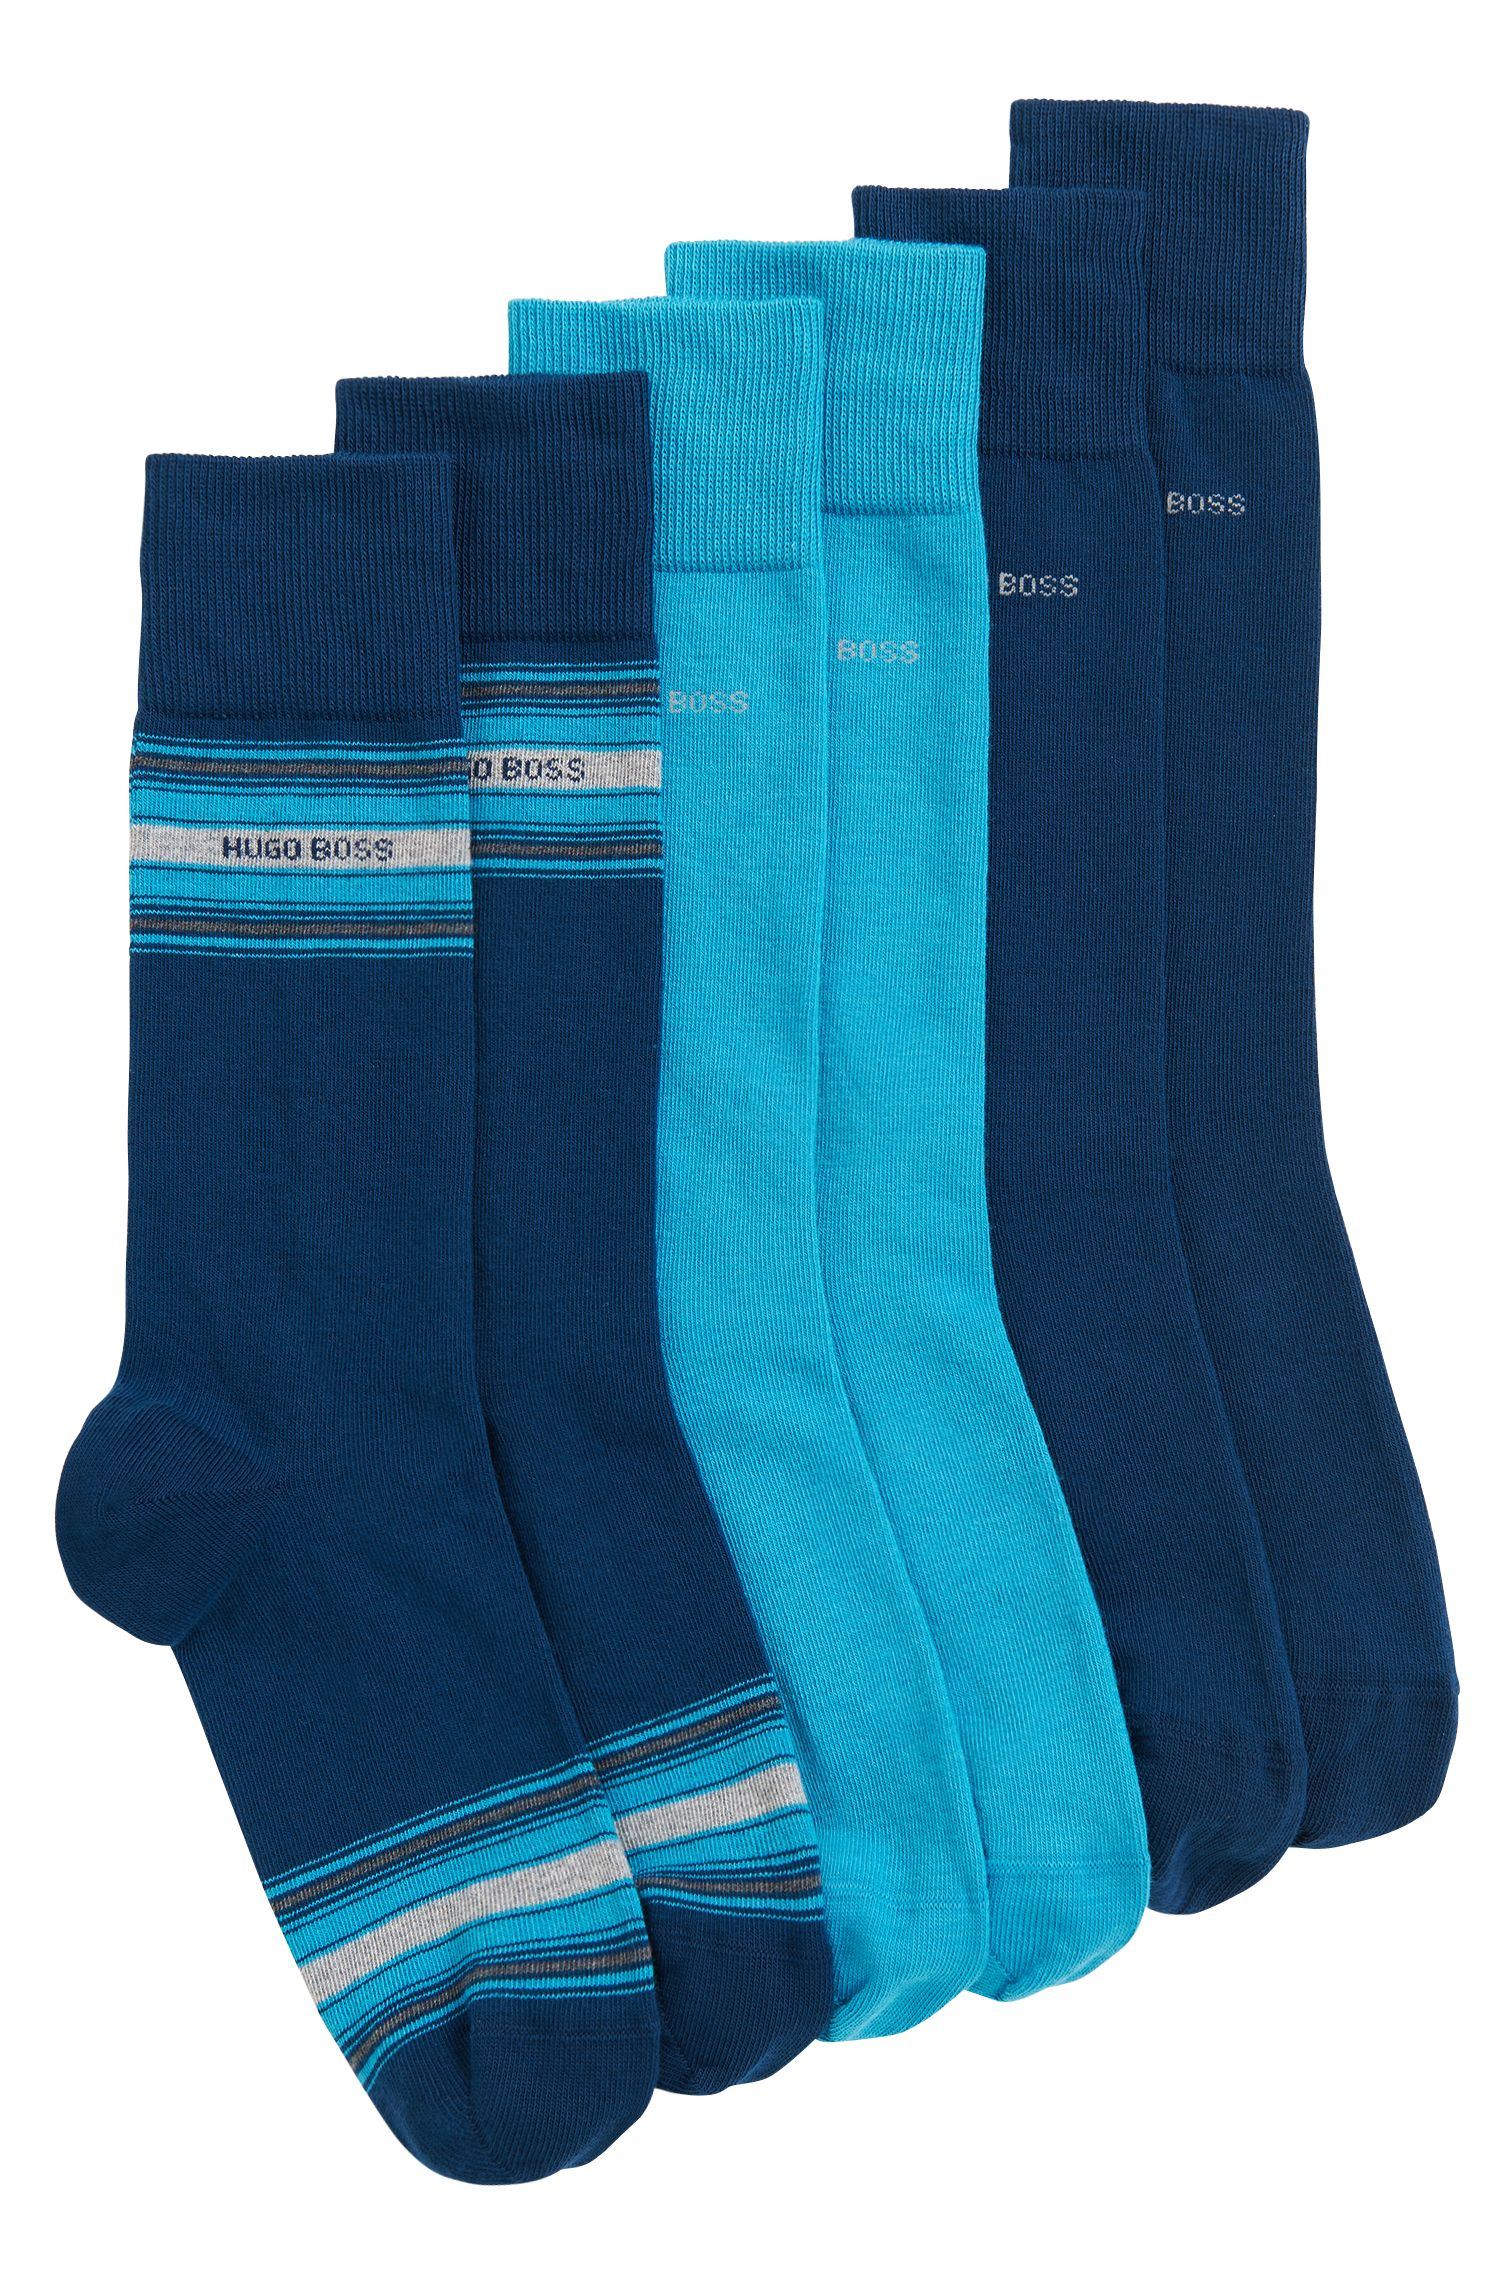 Three-pack of regular-length cotton-blend socks